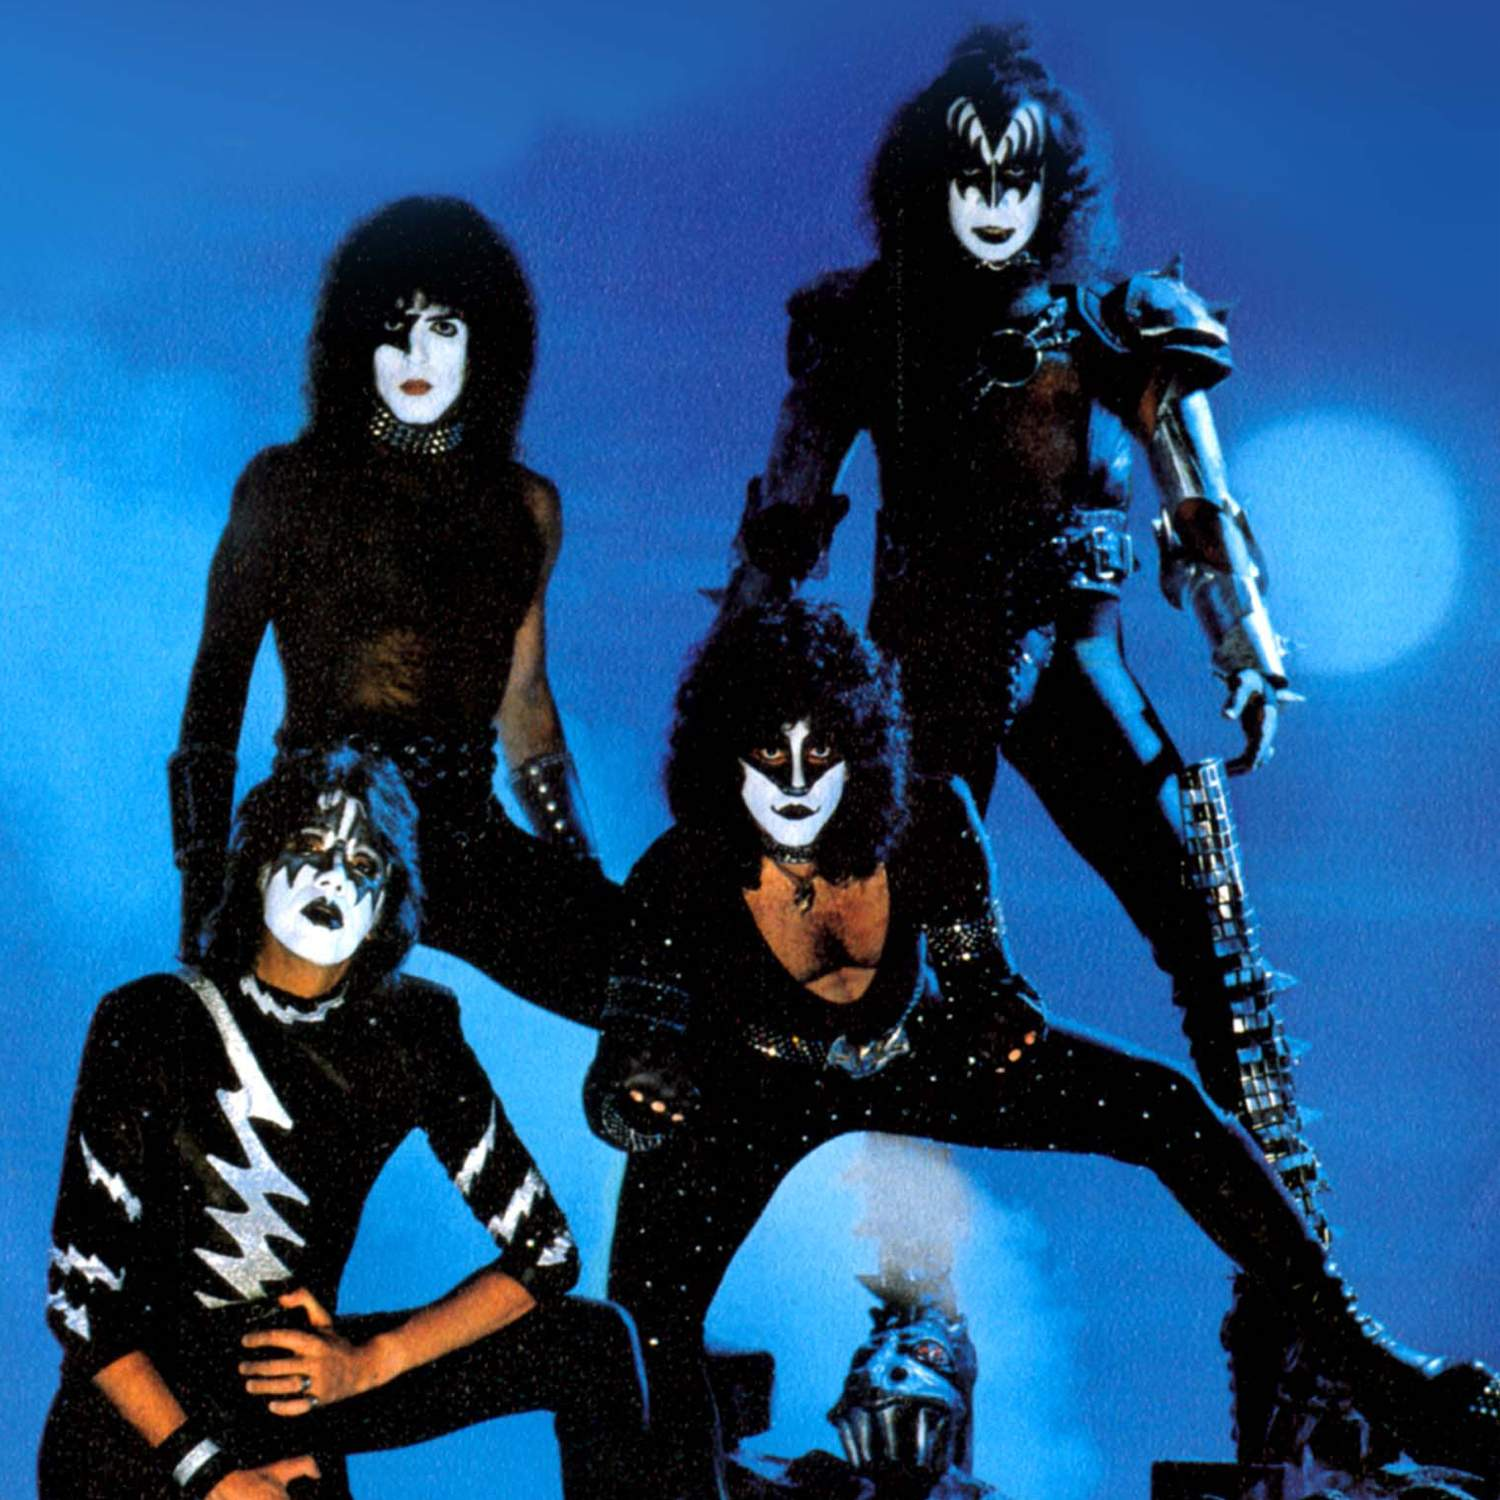 Kiss - Creatures Of The Night (25th Anniversary Edition) - Booklet (10-10).jpg